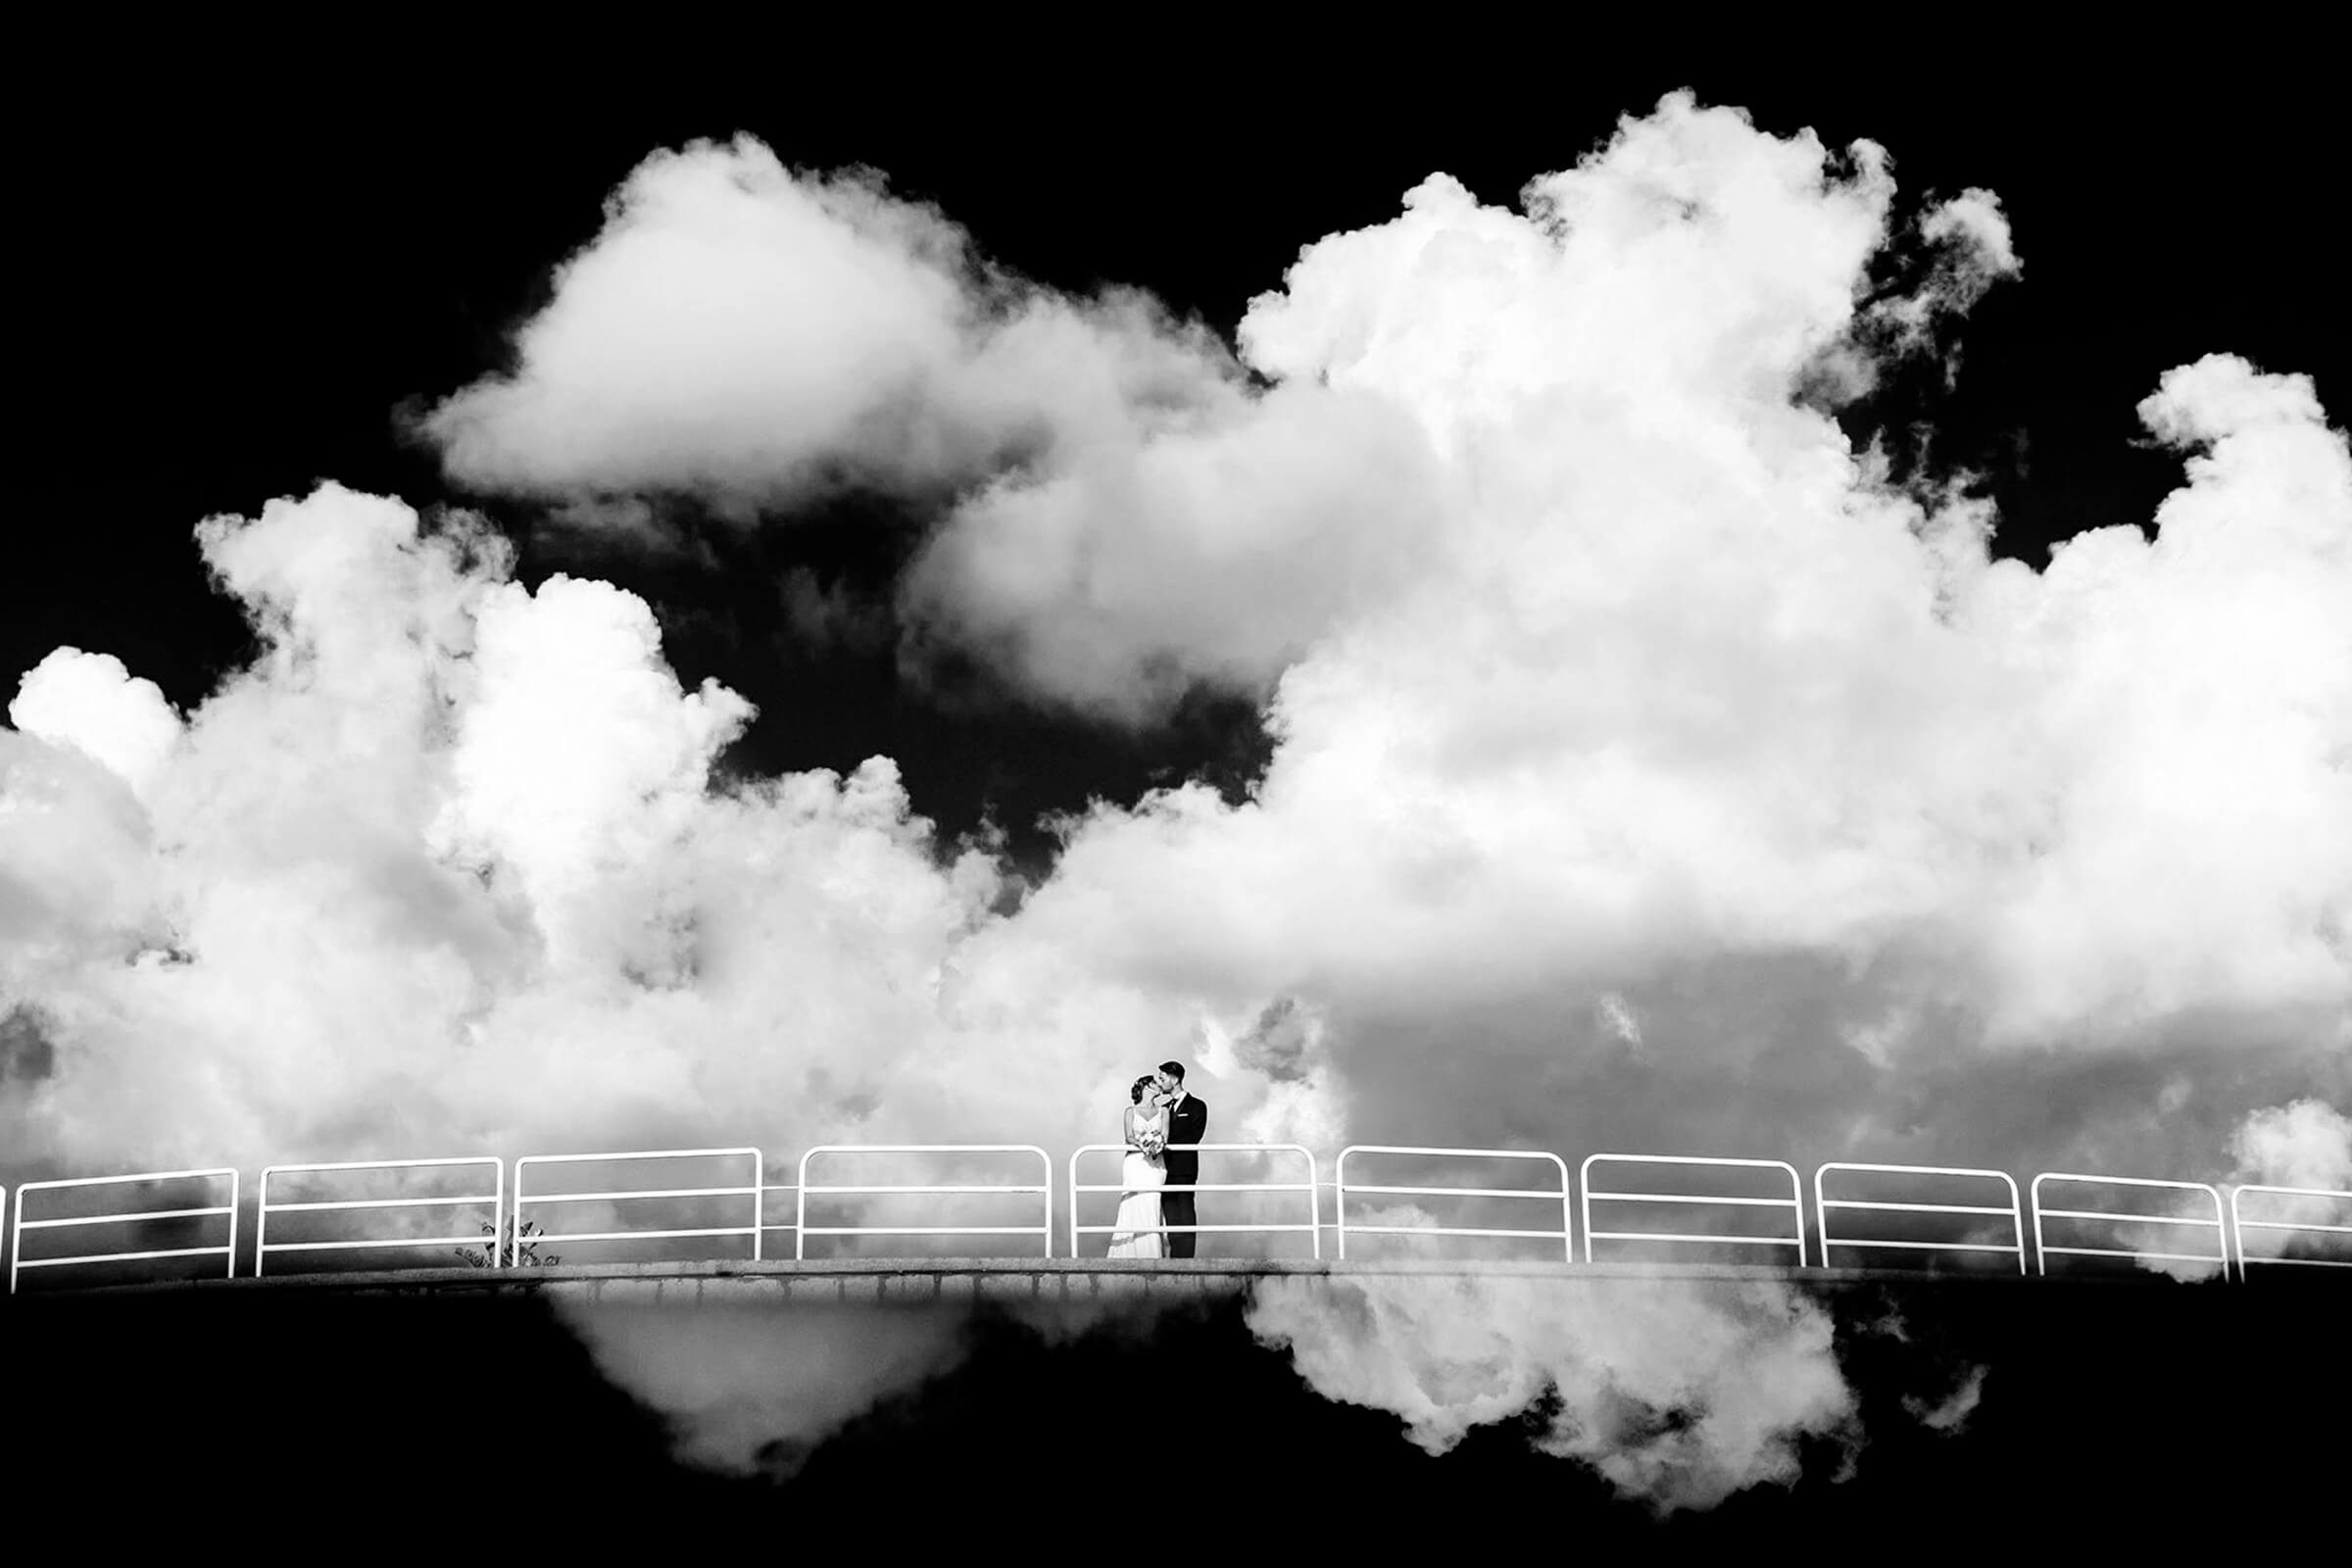 Landscape view of couple on bridge against cumulus cloud sky - photo by Nino Lombardo Photographer